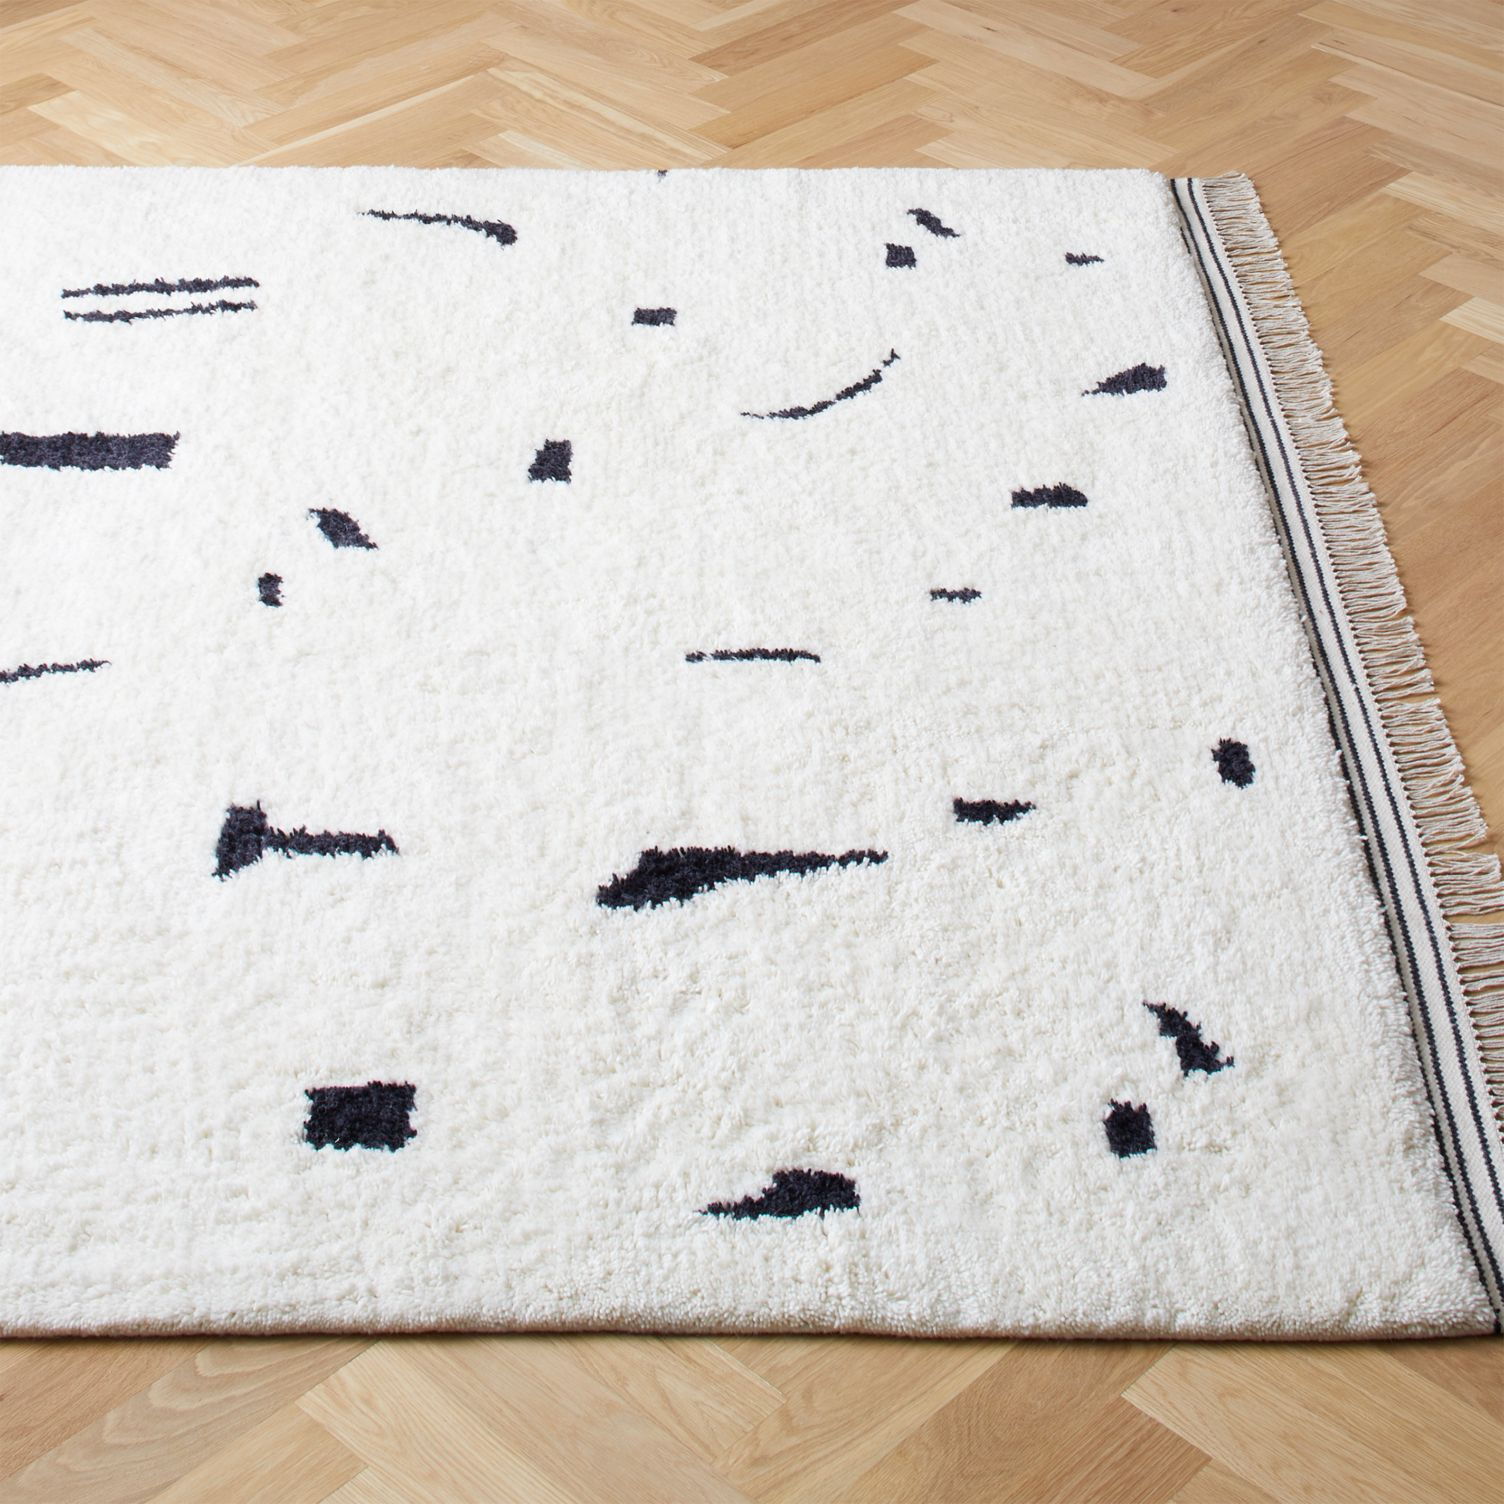 White-rug-with-black-abstract-design-15394